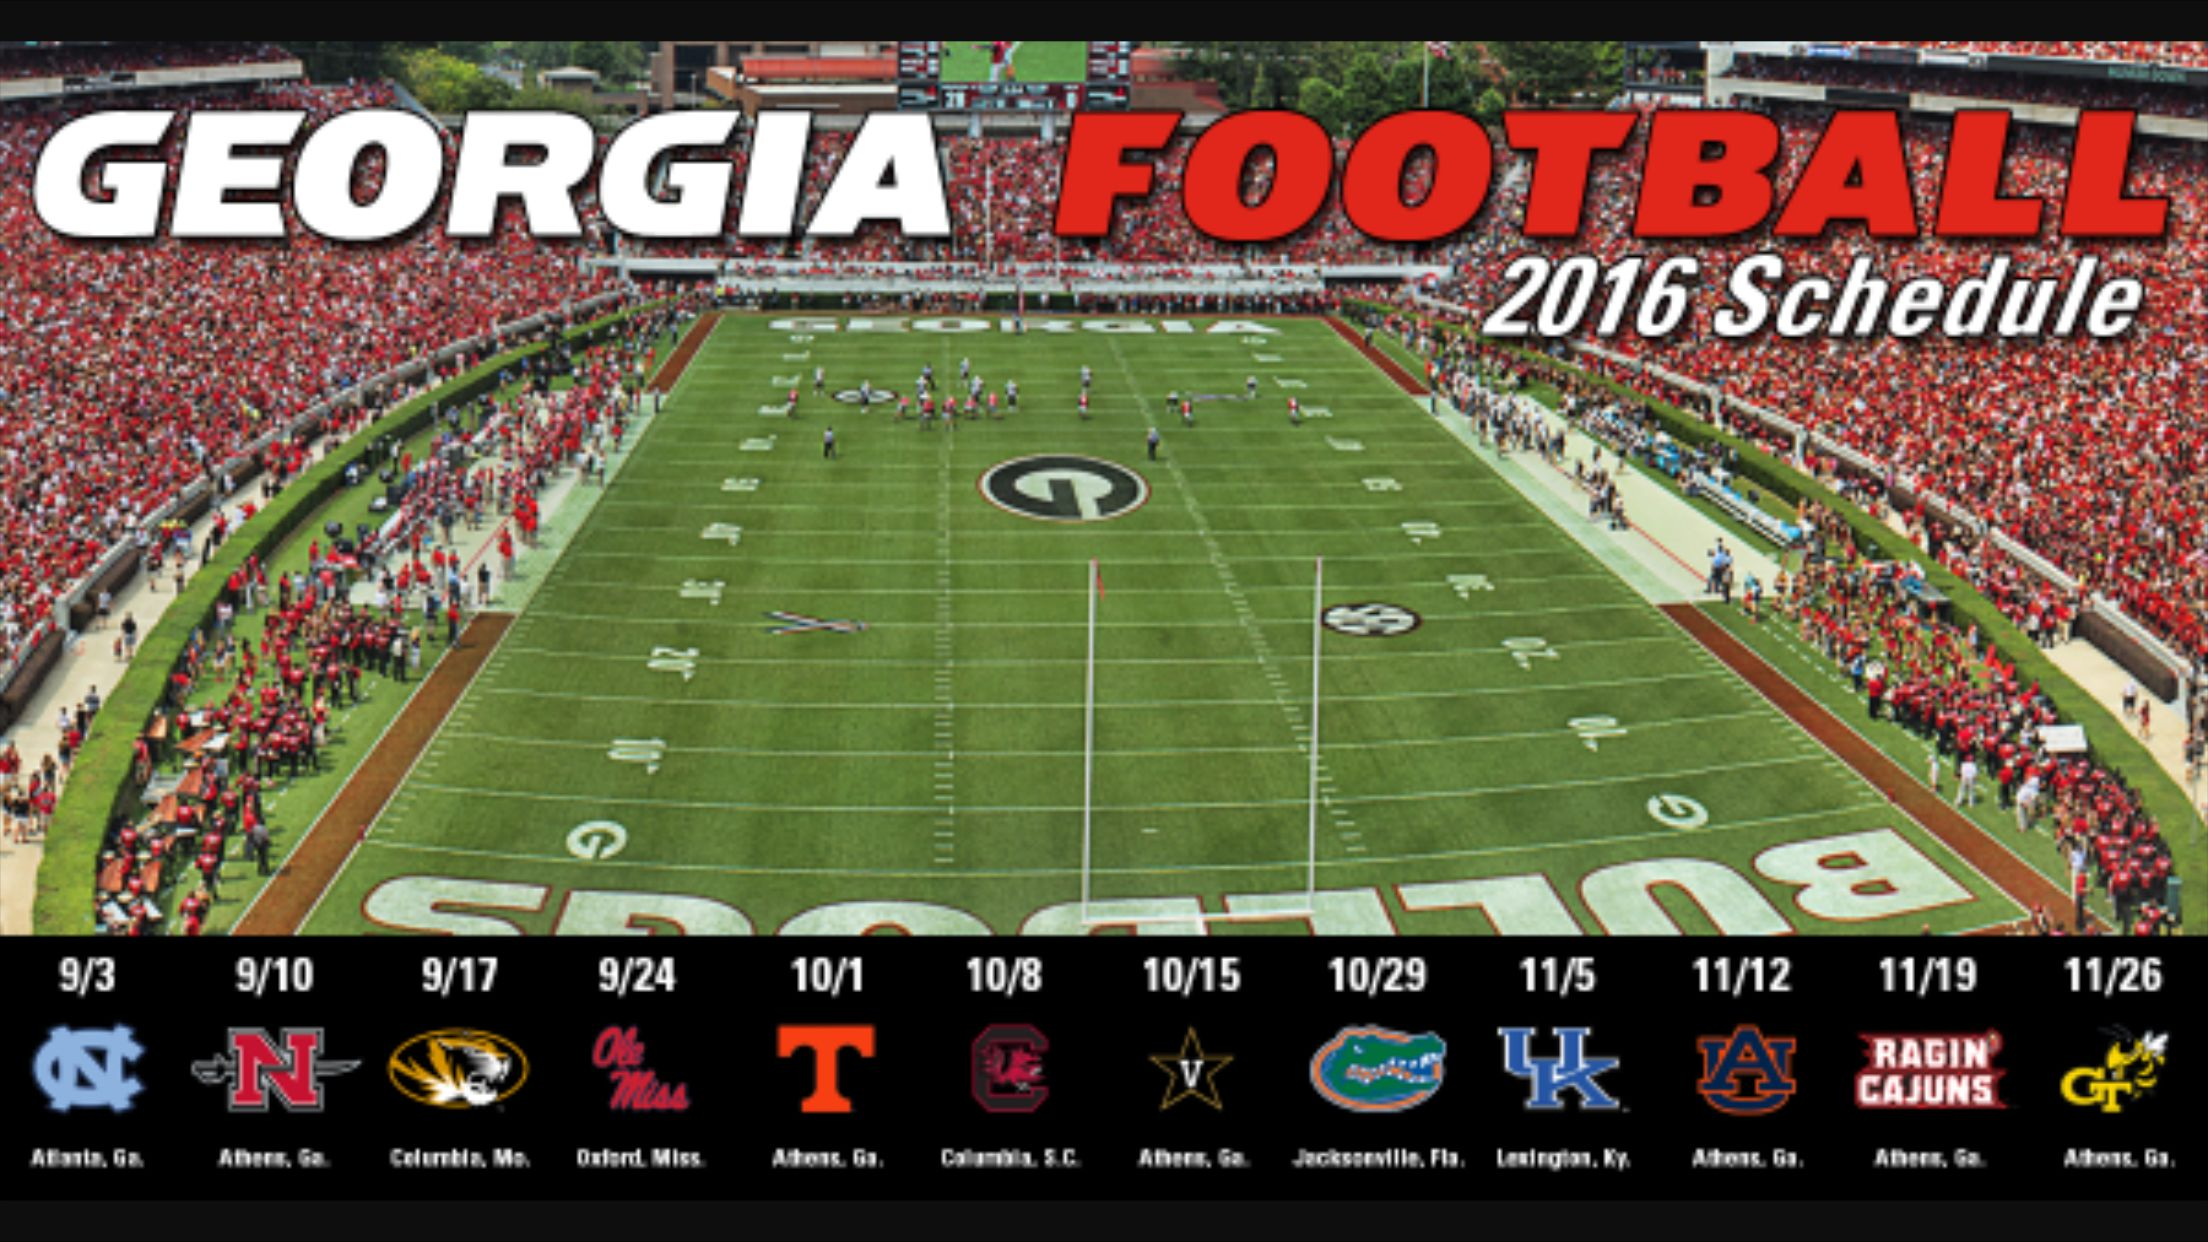 2k16 Football schedule 🐾 🏈 ️ (With images